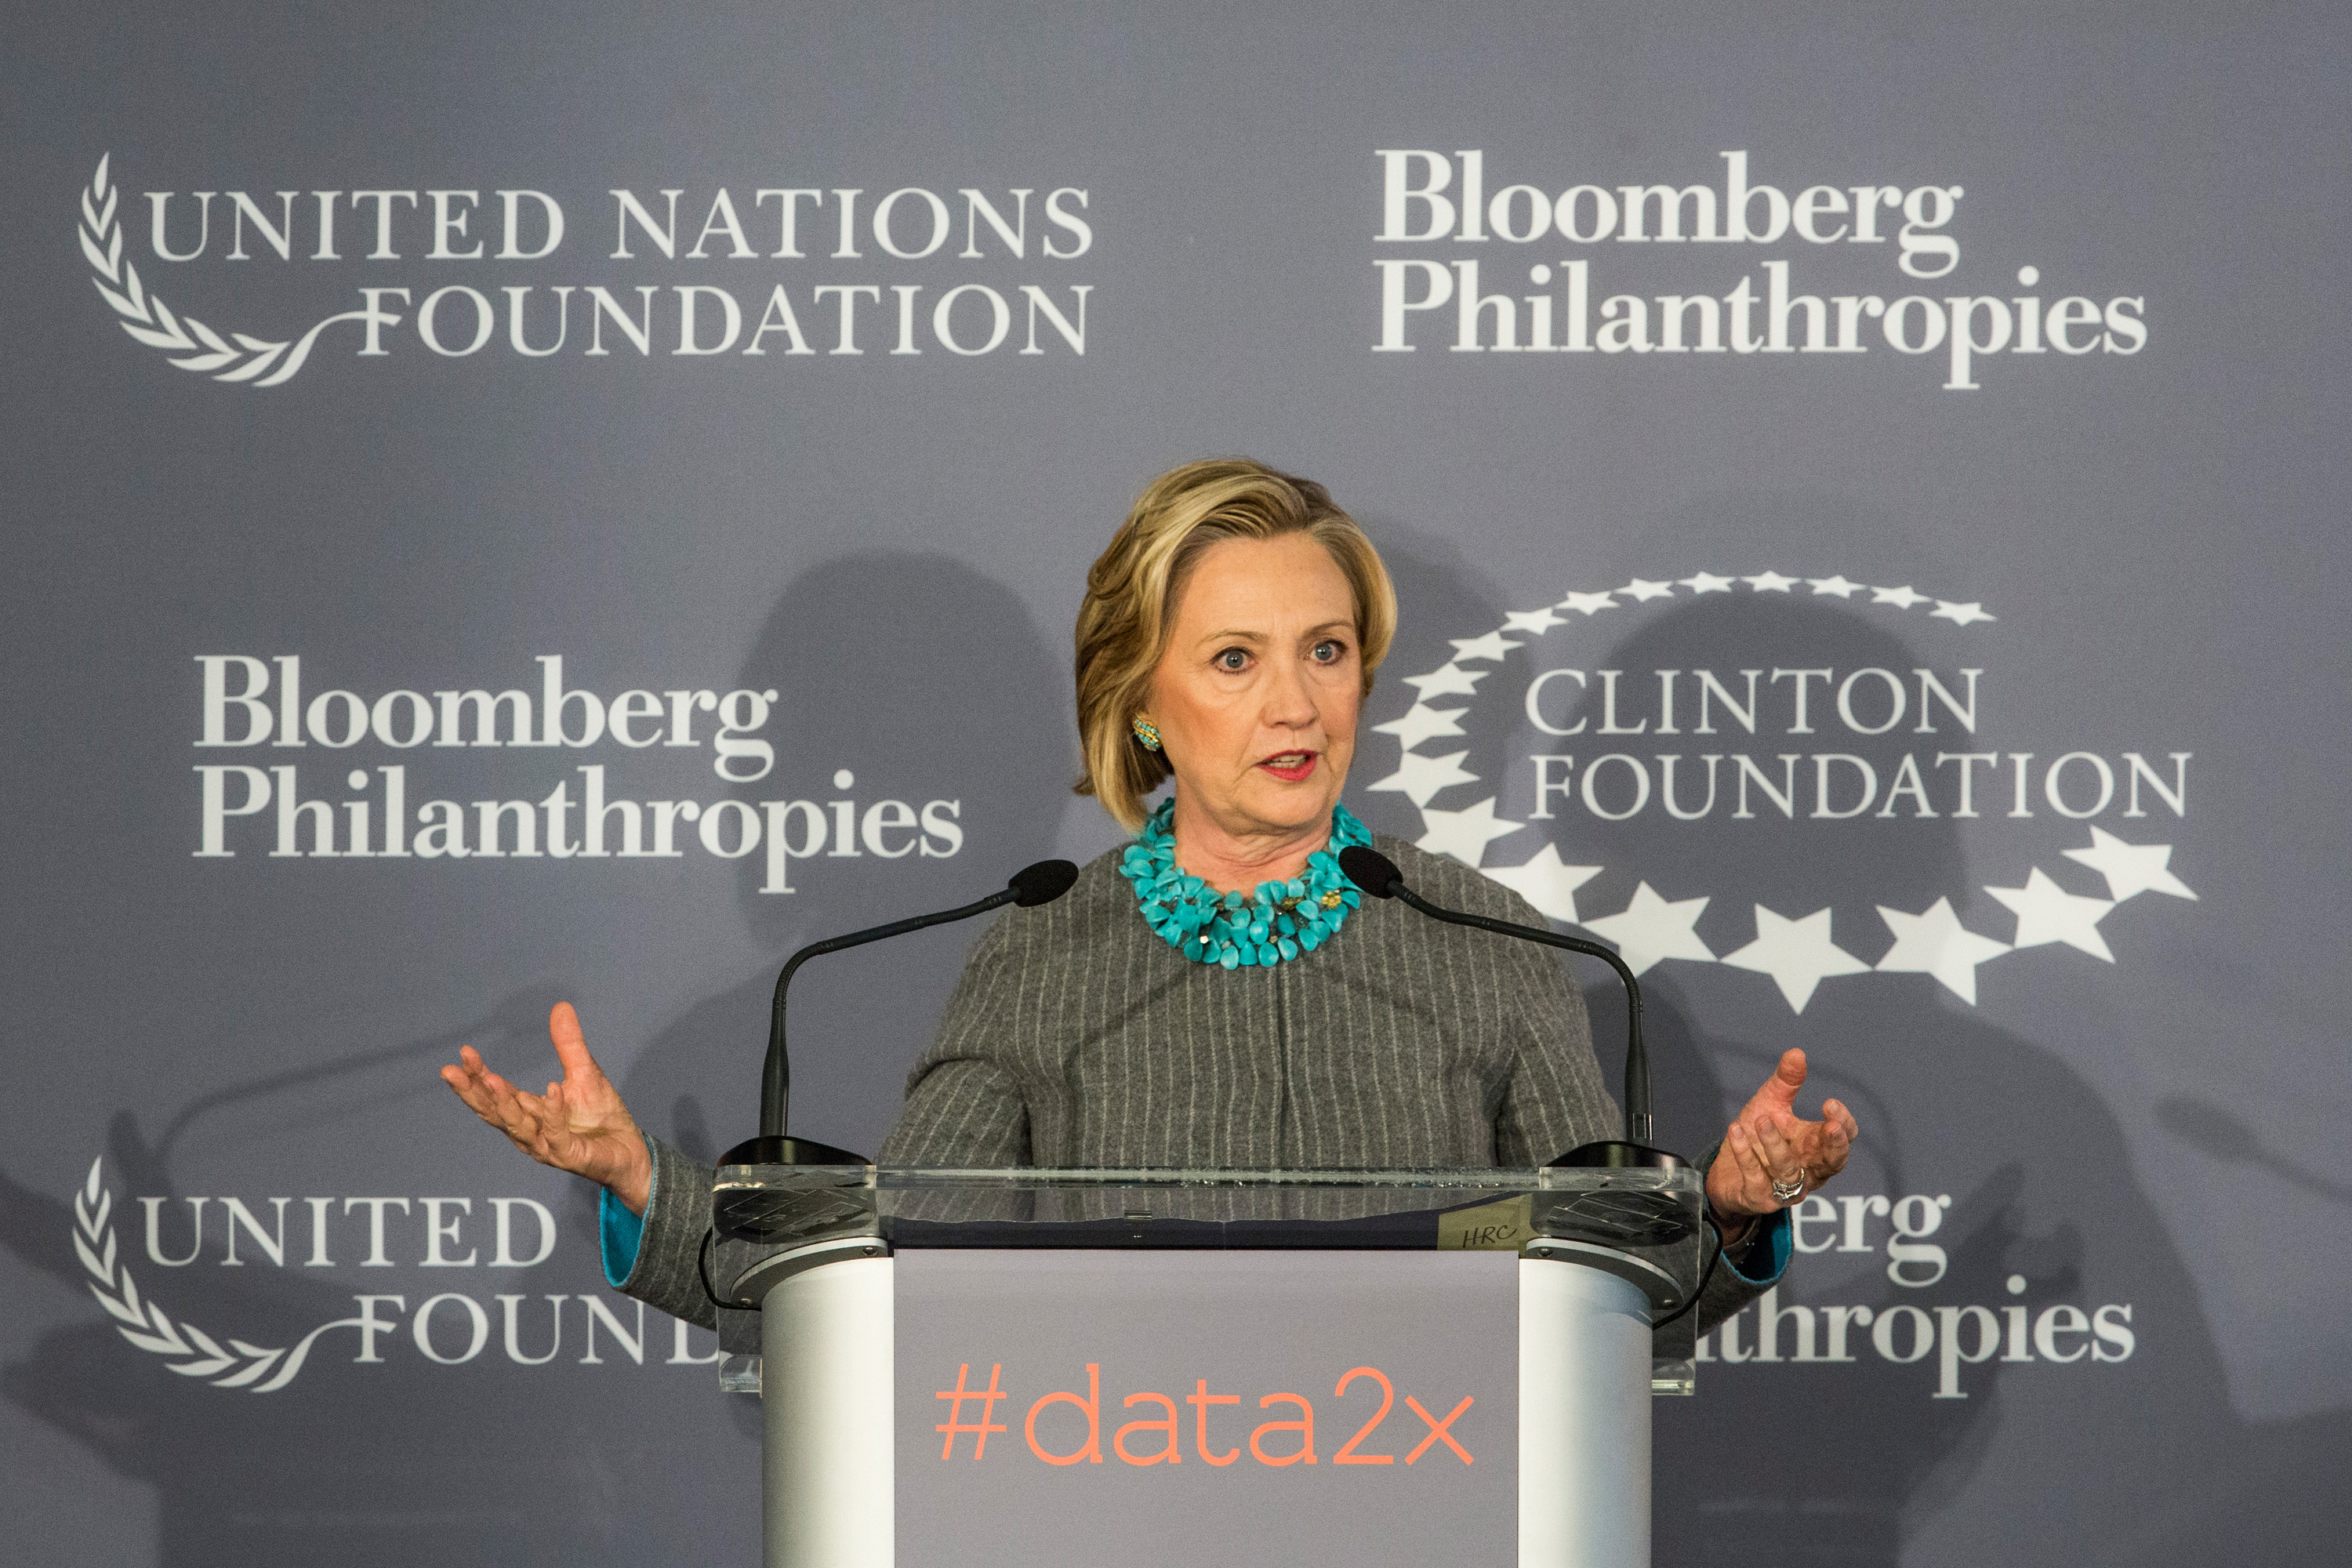 Hillary Clinton And Michael Bloomberg Announce Partnerships To Close Gender Data Gaps